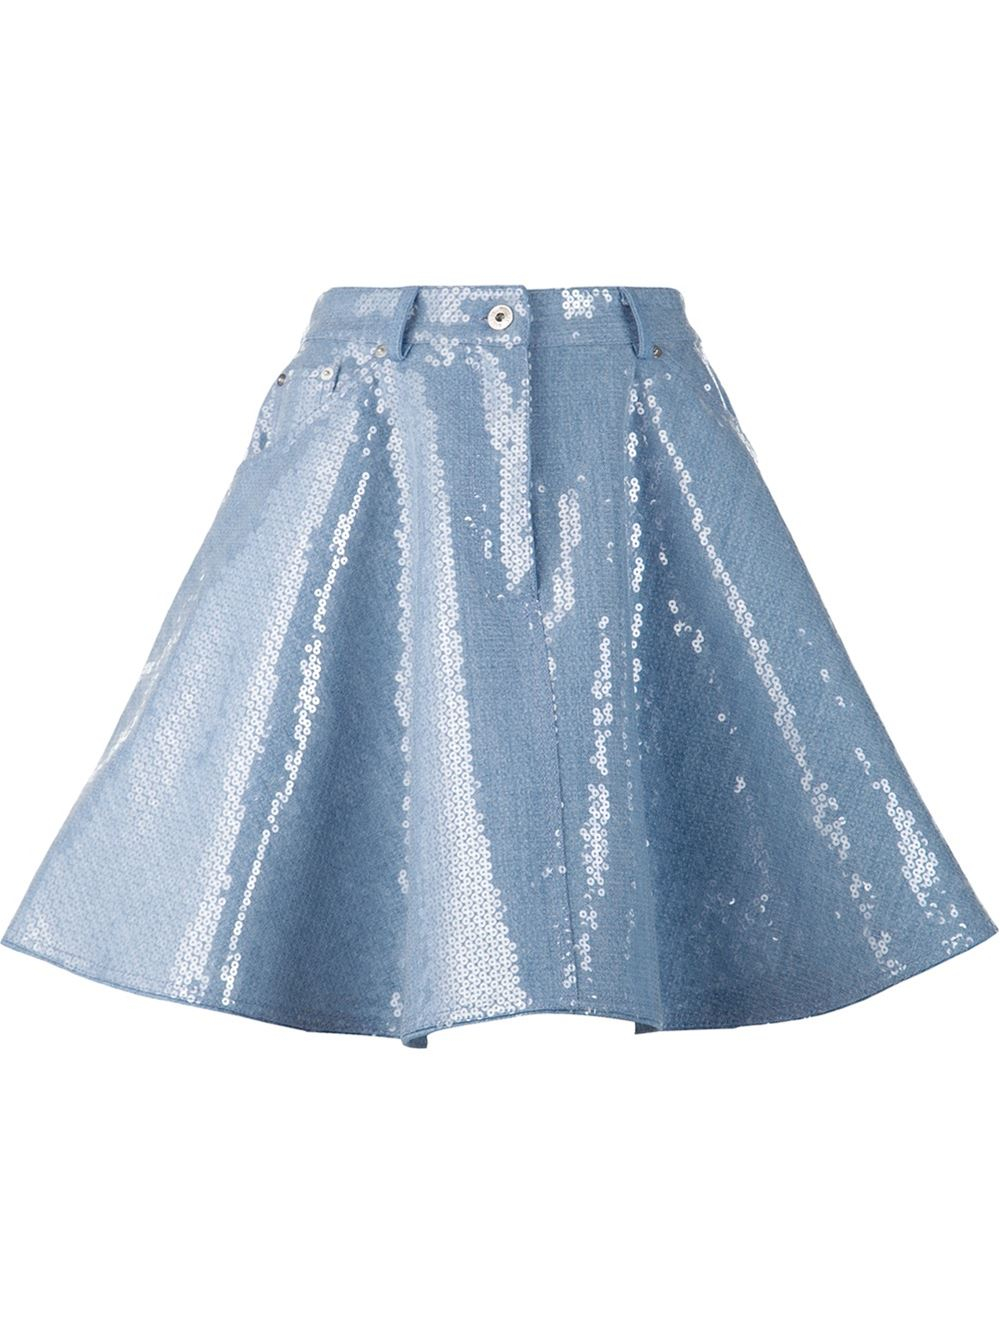 Blue Sequin Skirt 81